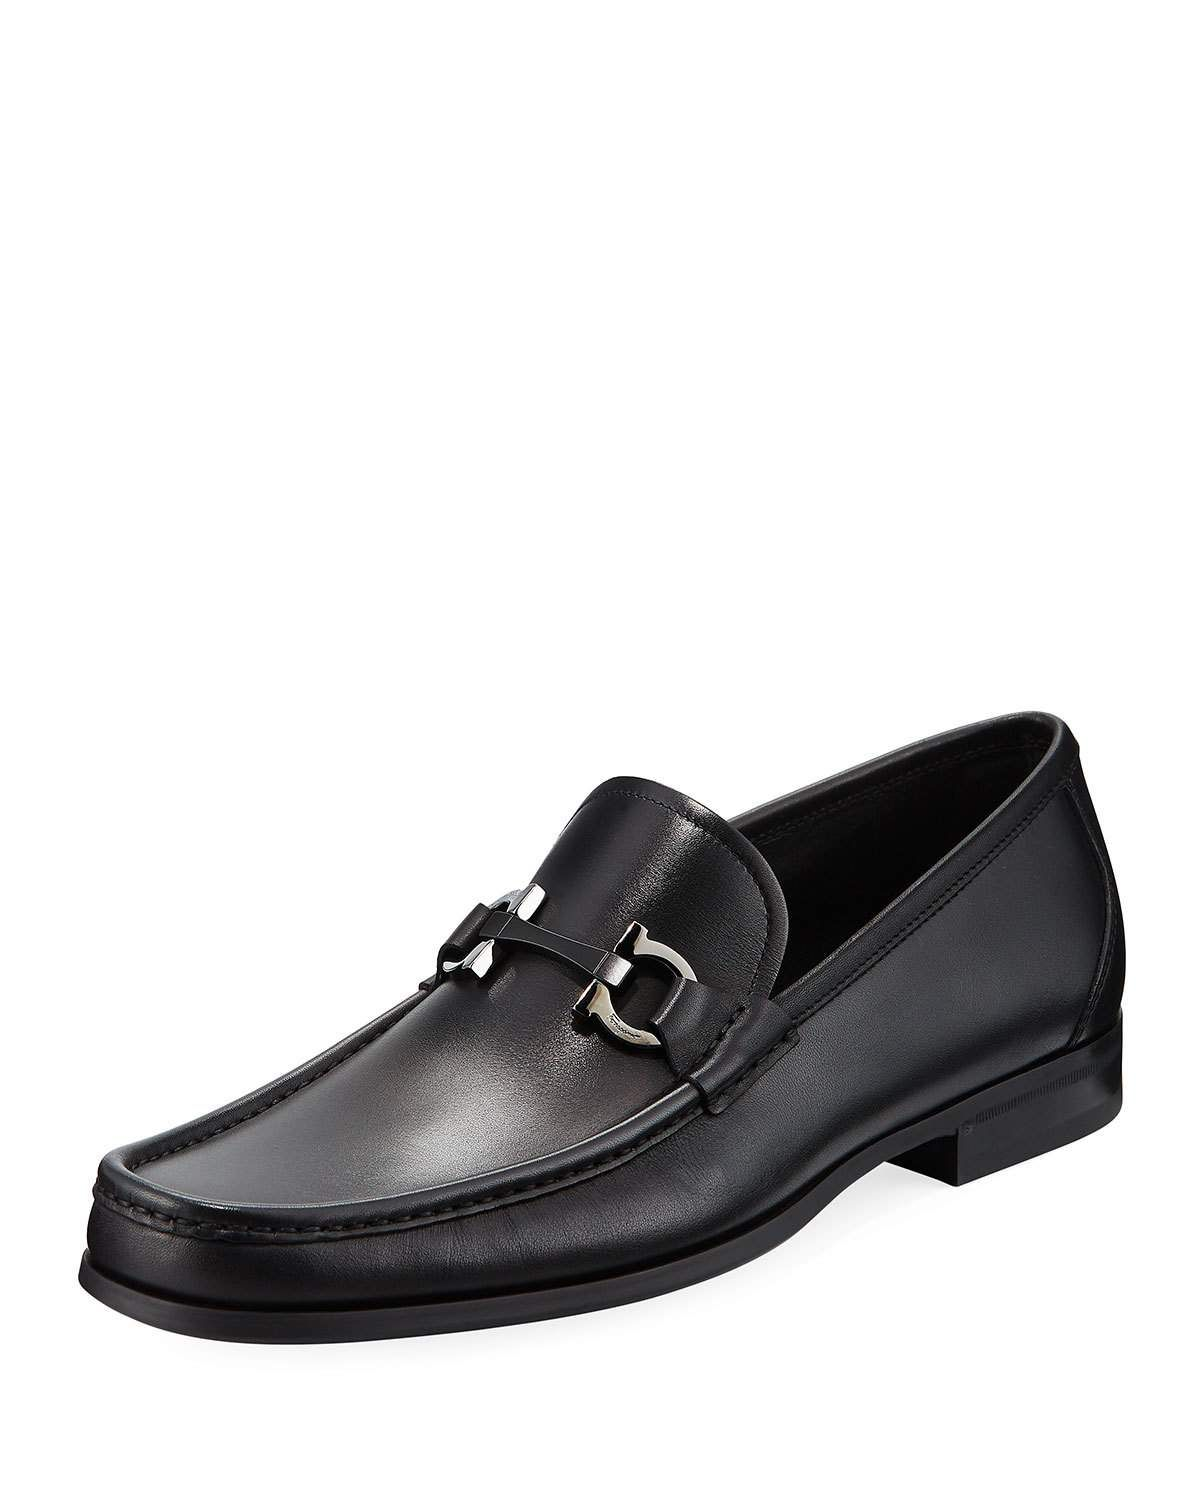 07671ae4 SALVATORE FERRAGAMO MEN'S GANCINI-BIT LEATHER MOCCASIN LOAFER. # salvatoreferragamo #shoes